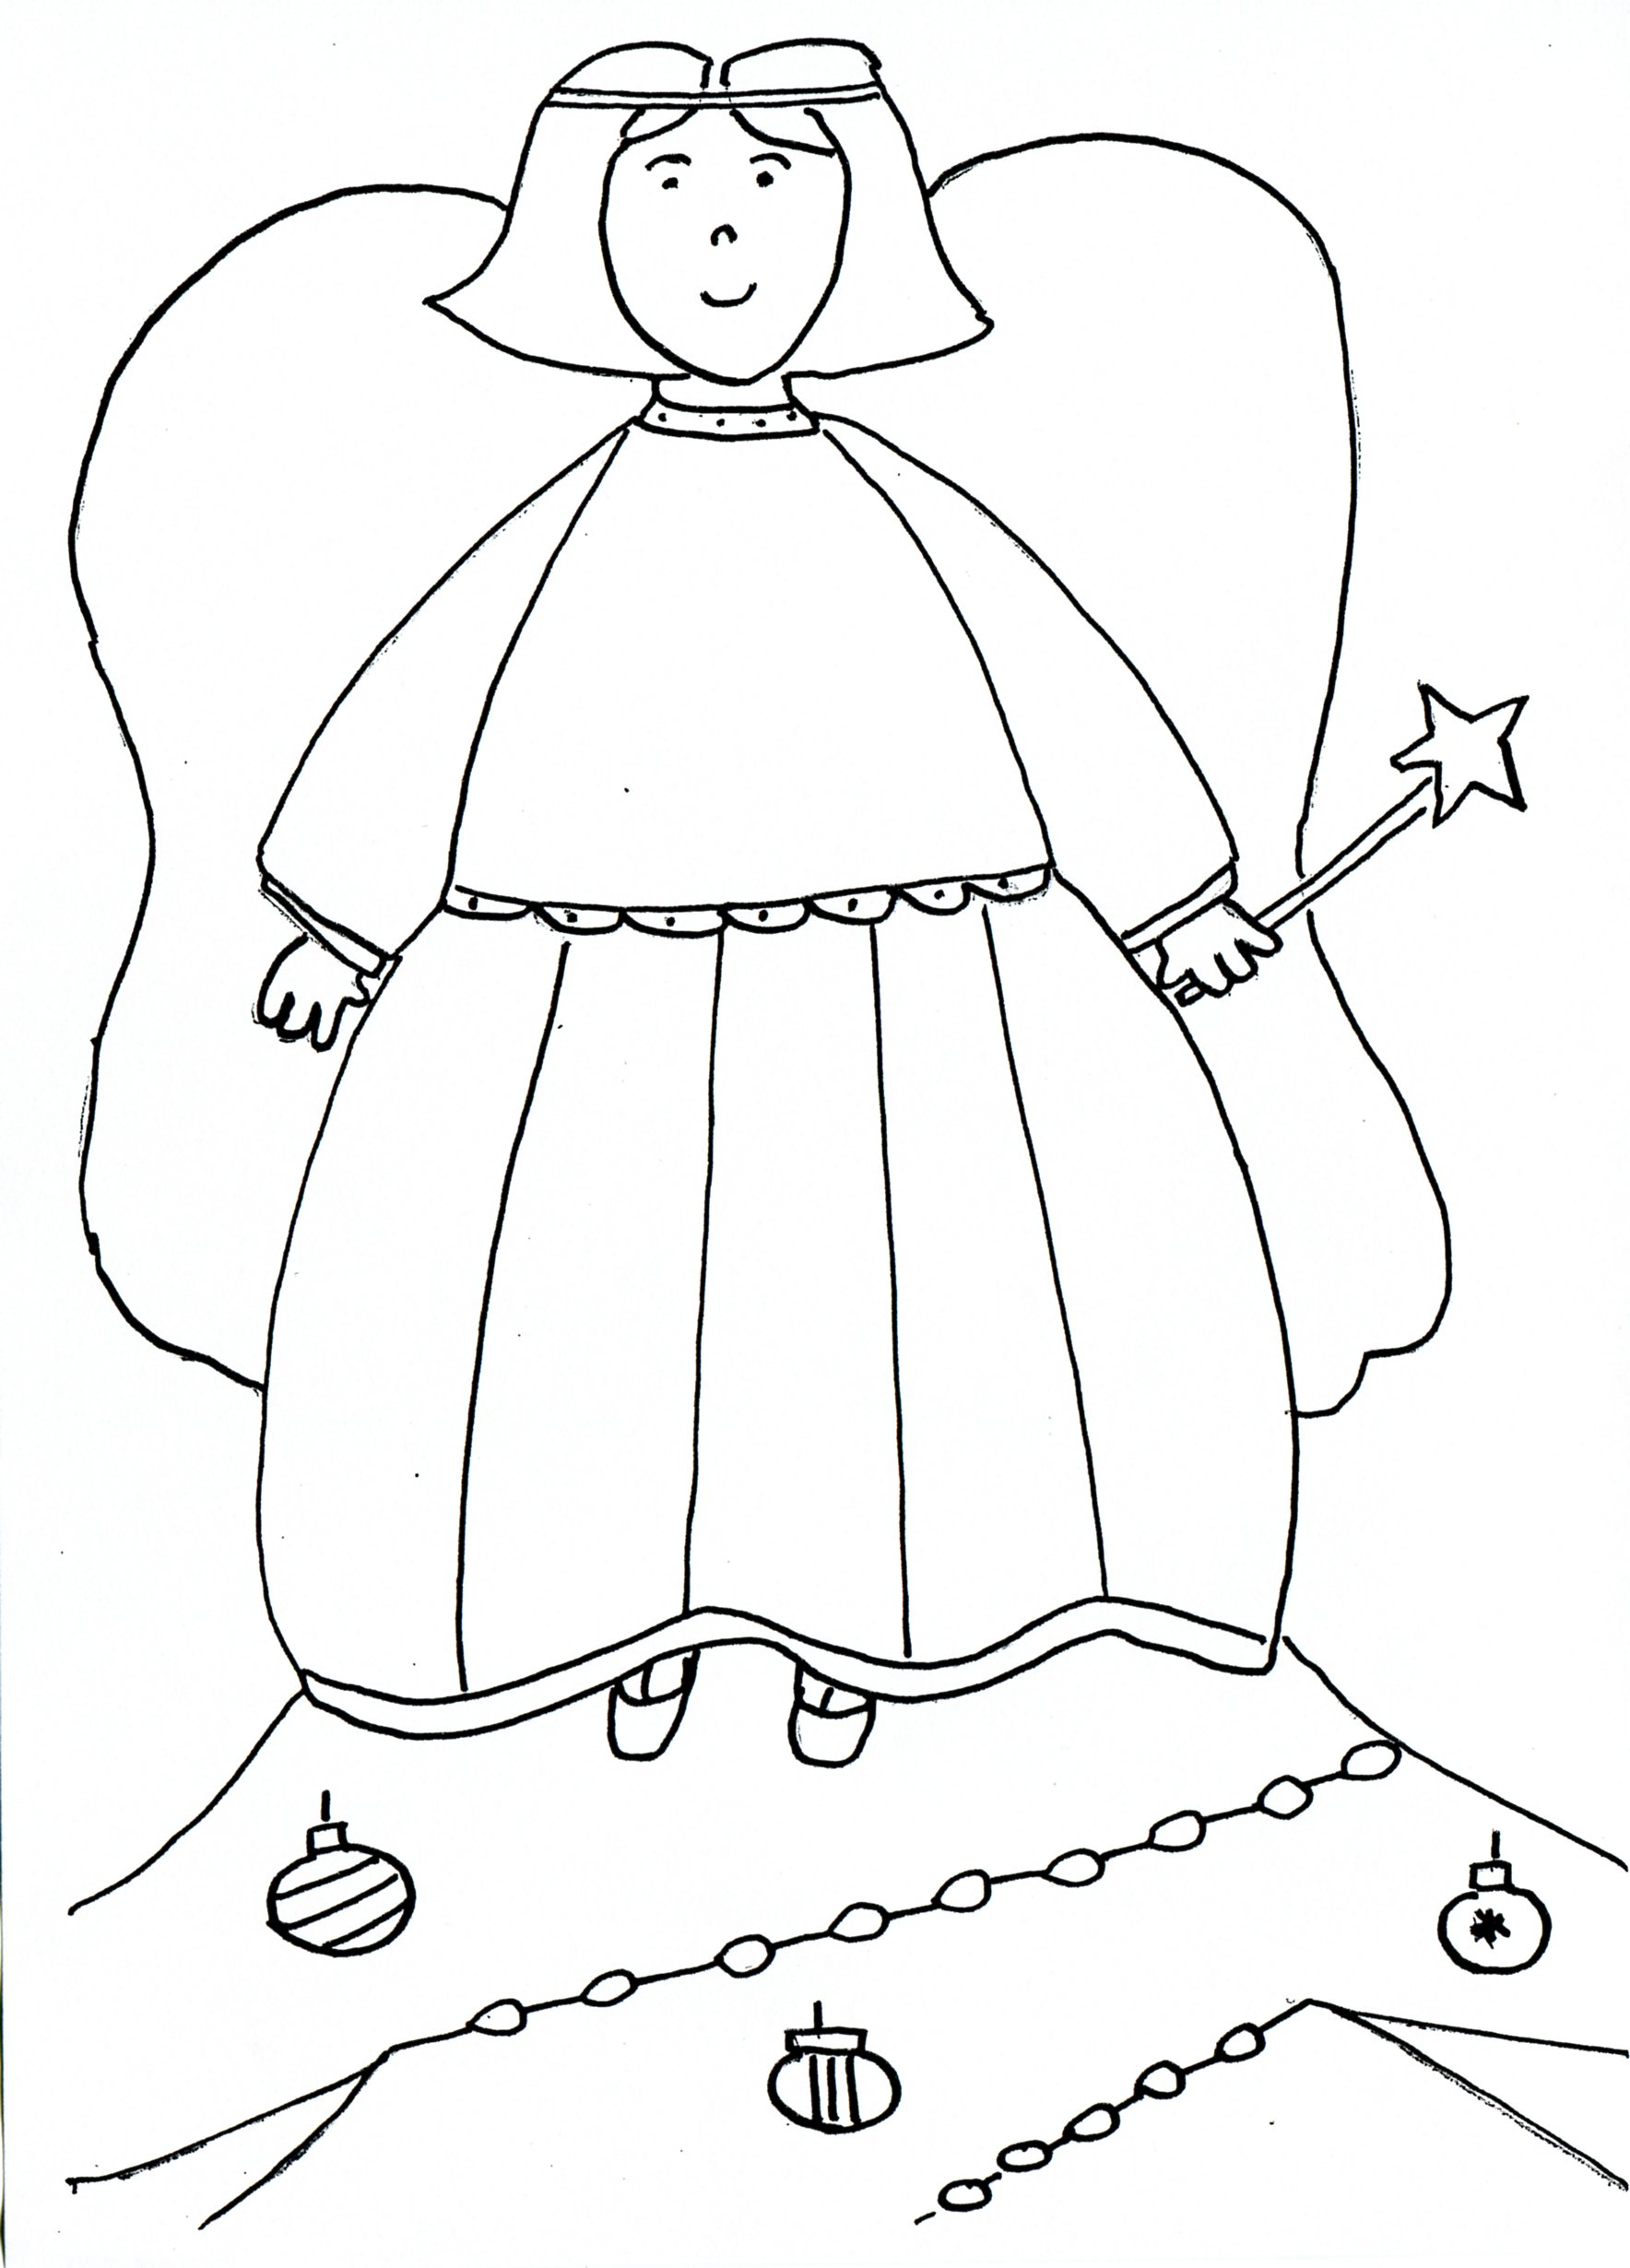 Free Coloring Pages Of Blob Tree